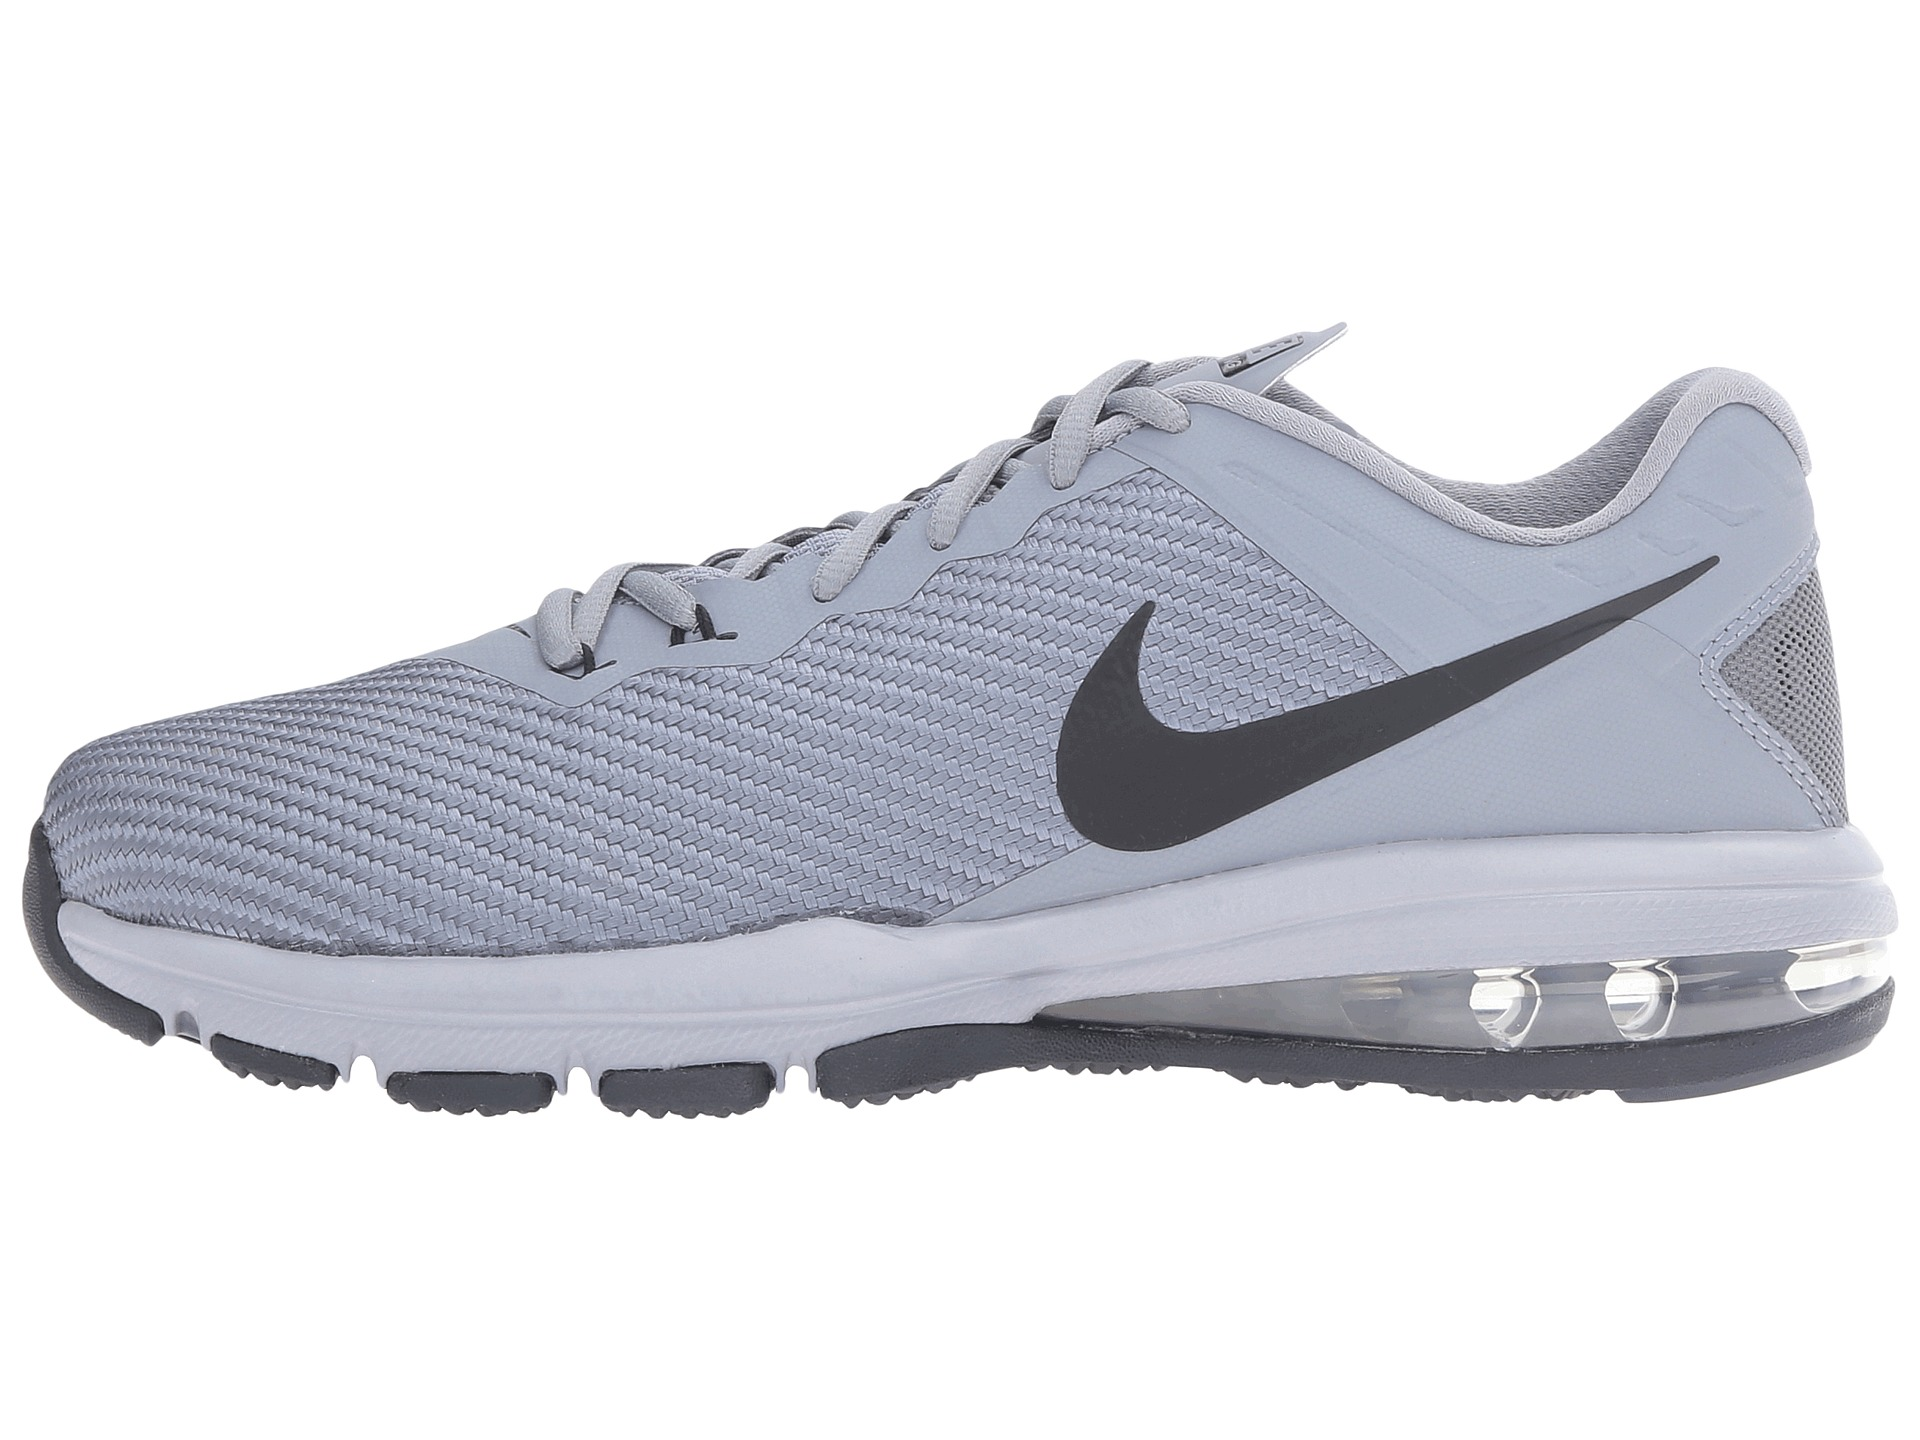 cdc26b3a9 nike air max compete tr high performance cross trainers